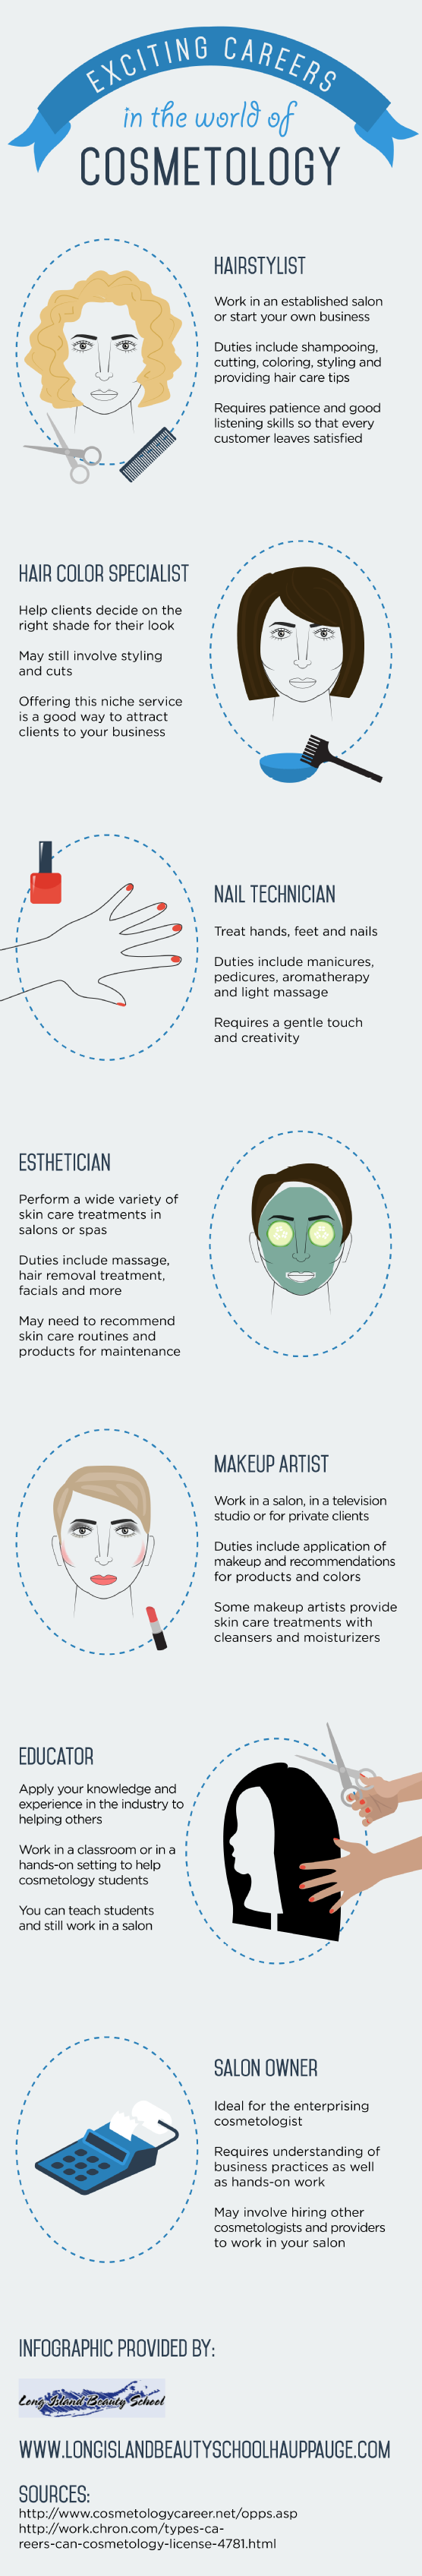 Did You Know That Makeup Artists Can Work In Salons Television